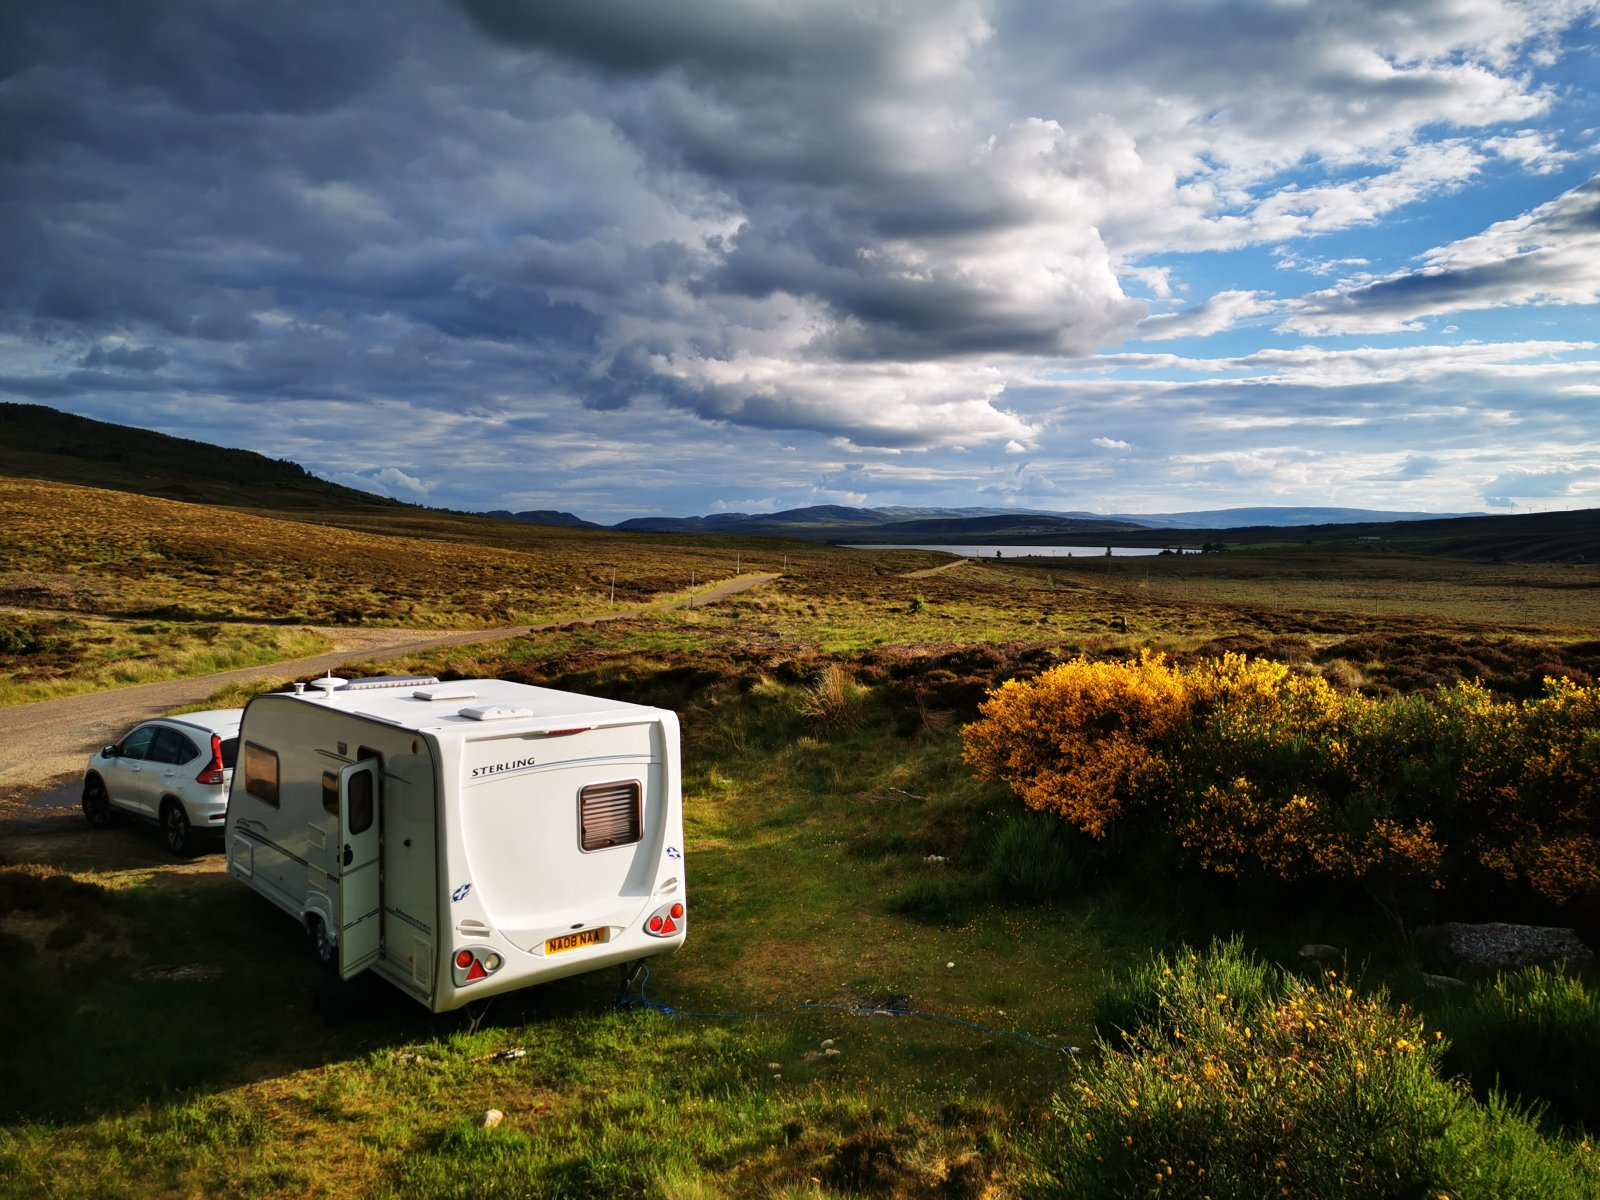 Wild camping at Lochindorb